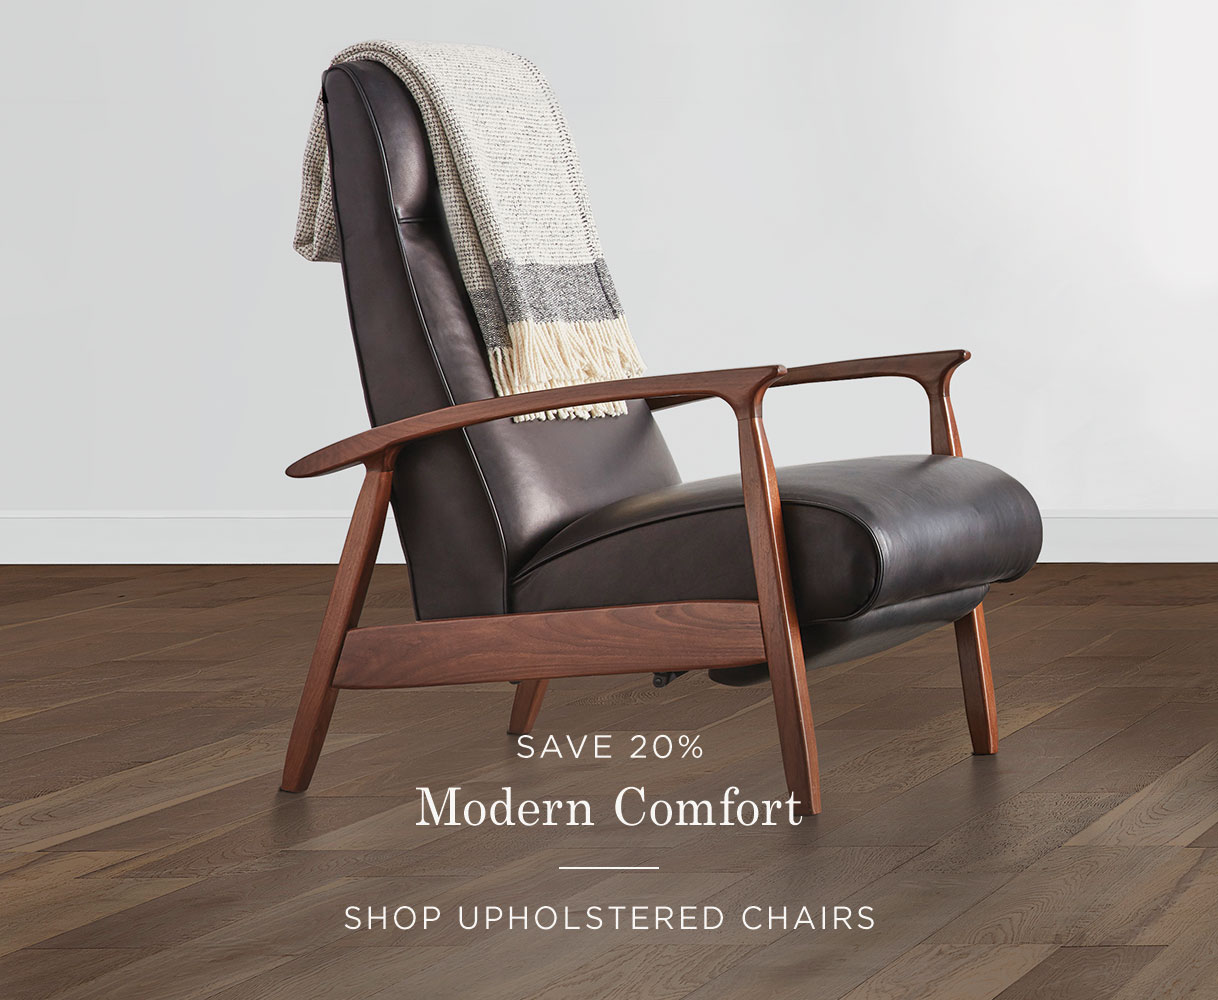 Shop Upholstered Chairs